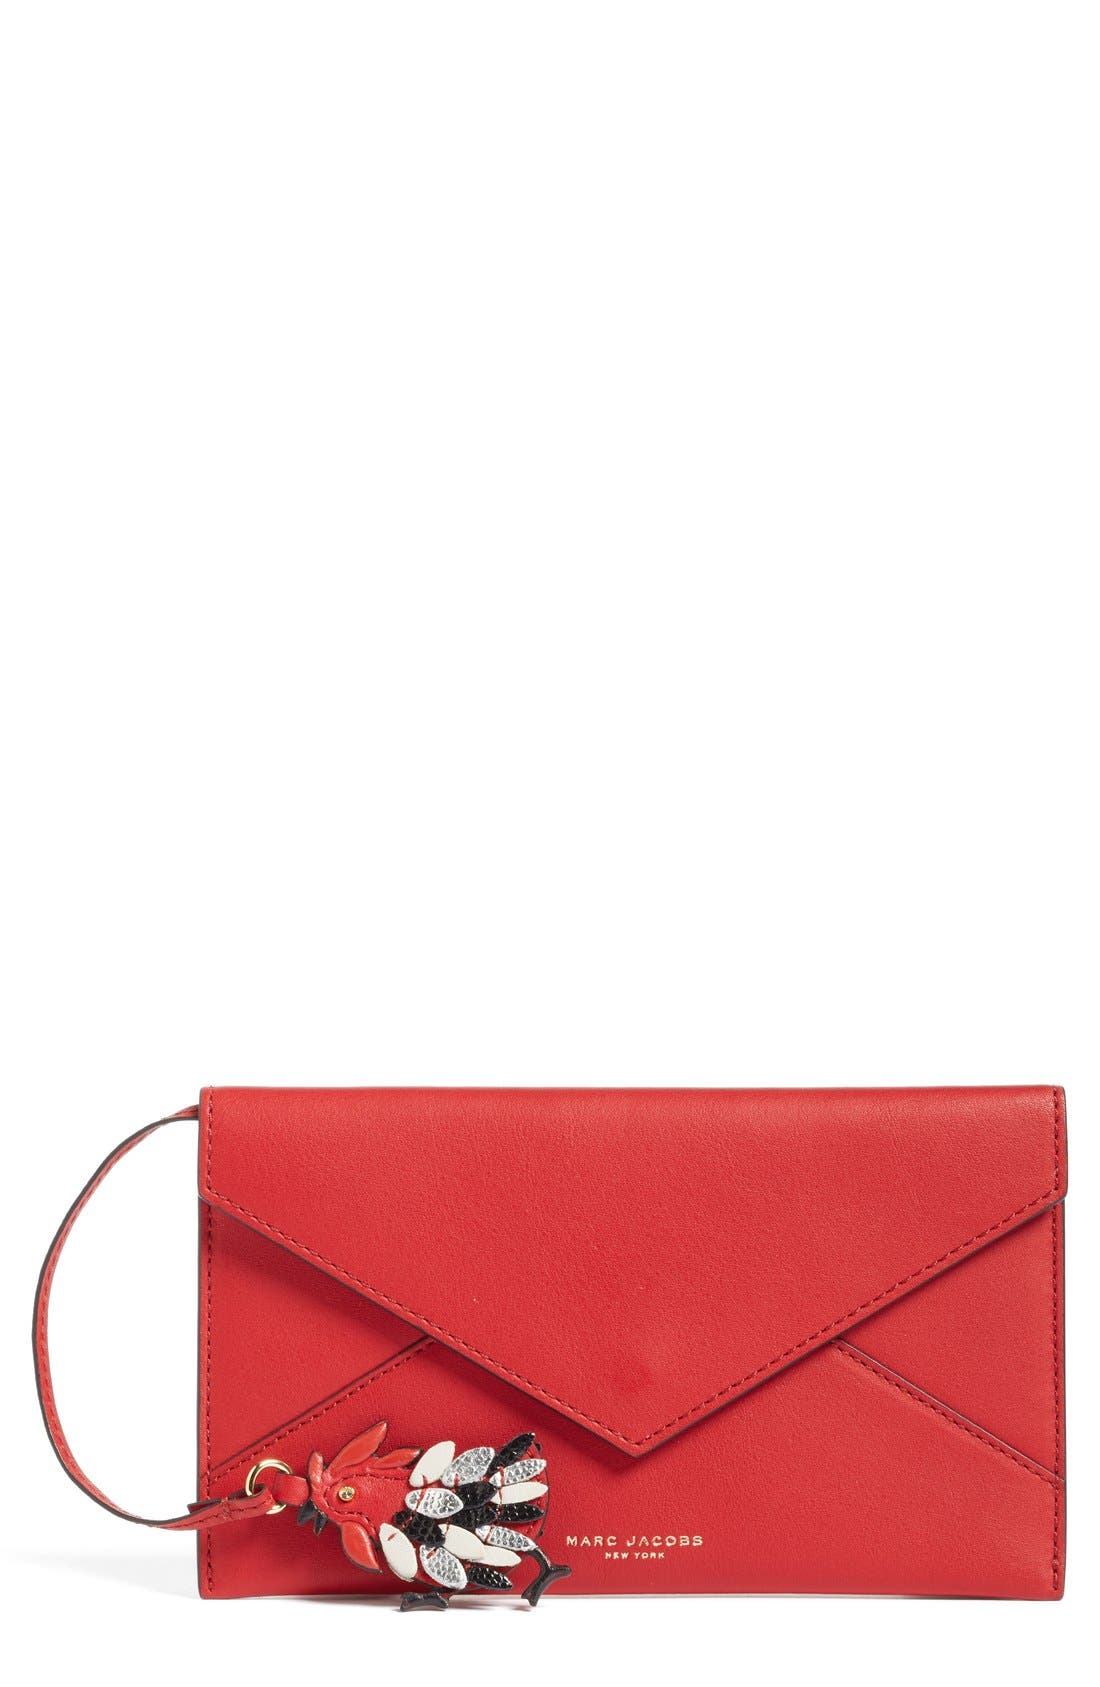 Main Image - MARC JACOBS Rooster Envelope Clutch